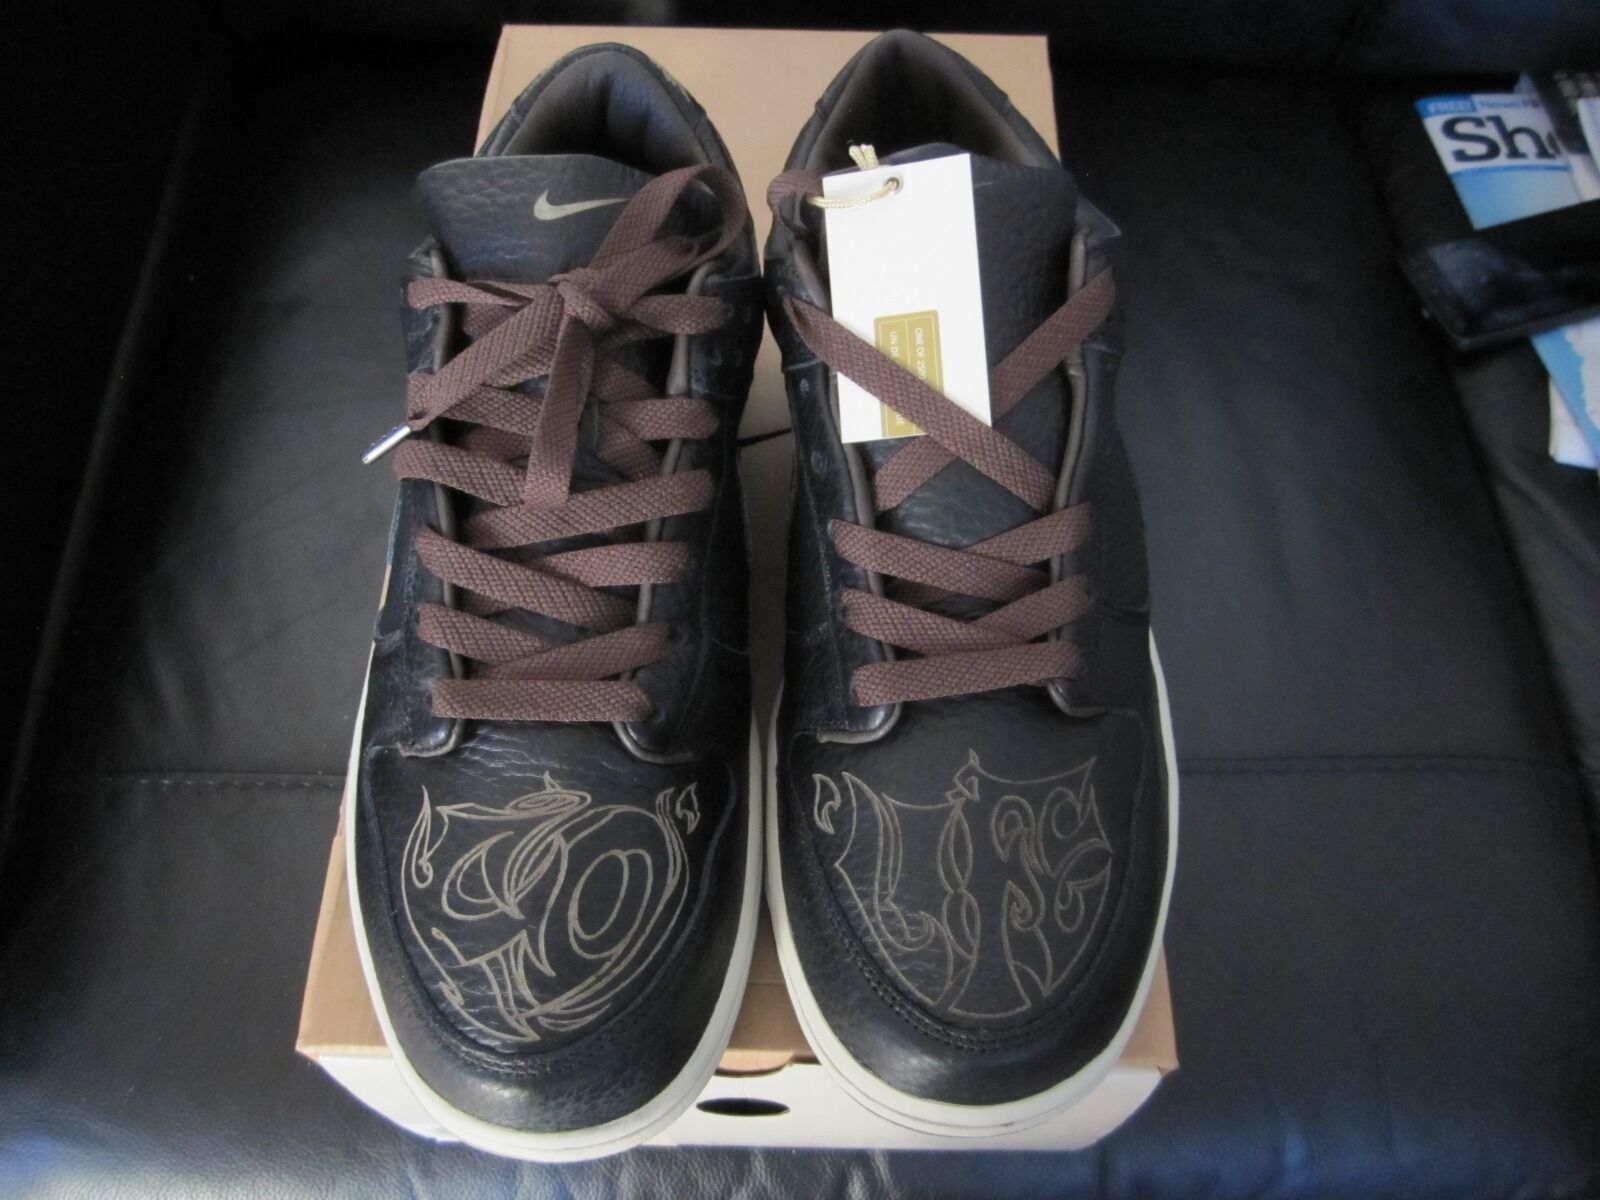 Nike Dunk Low By Laser Pack Limited Edition By Low Micheal Desmond U.K aba995